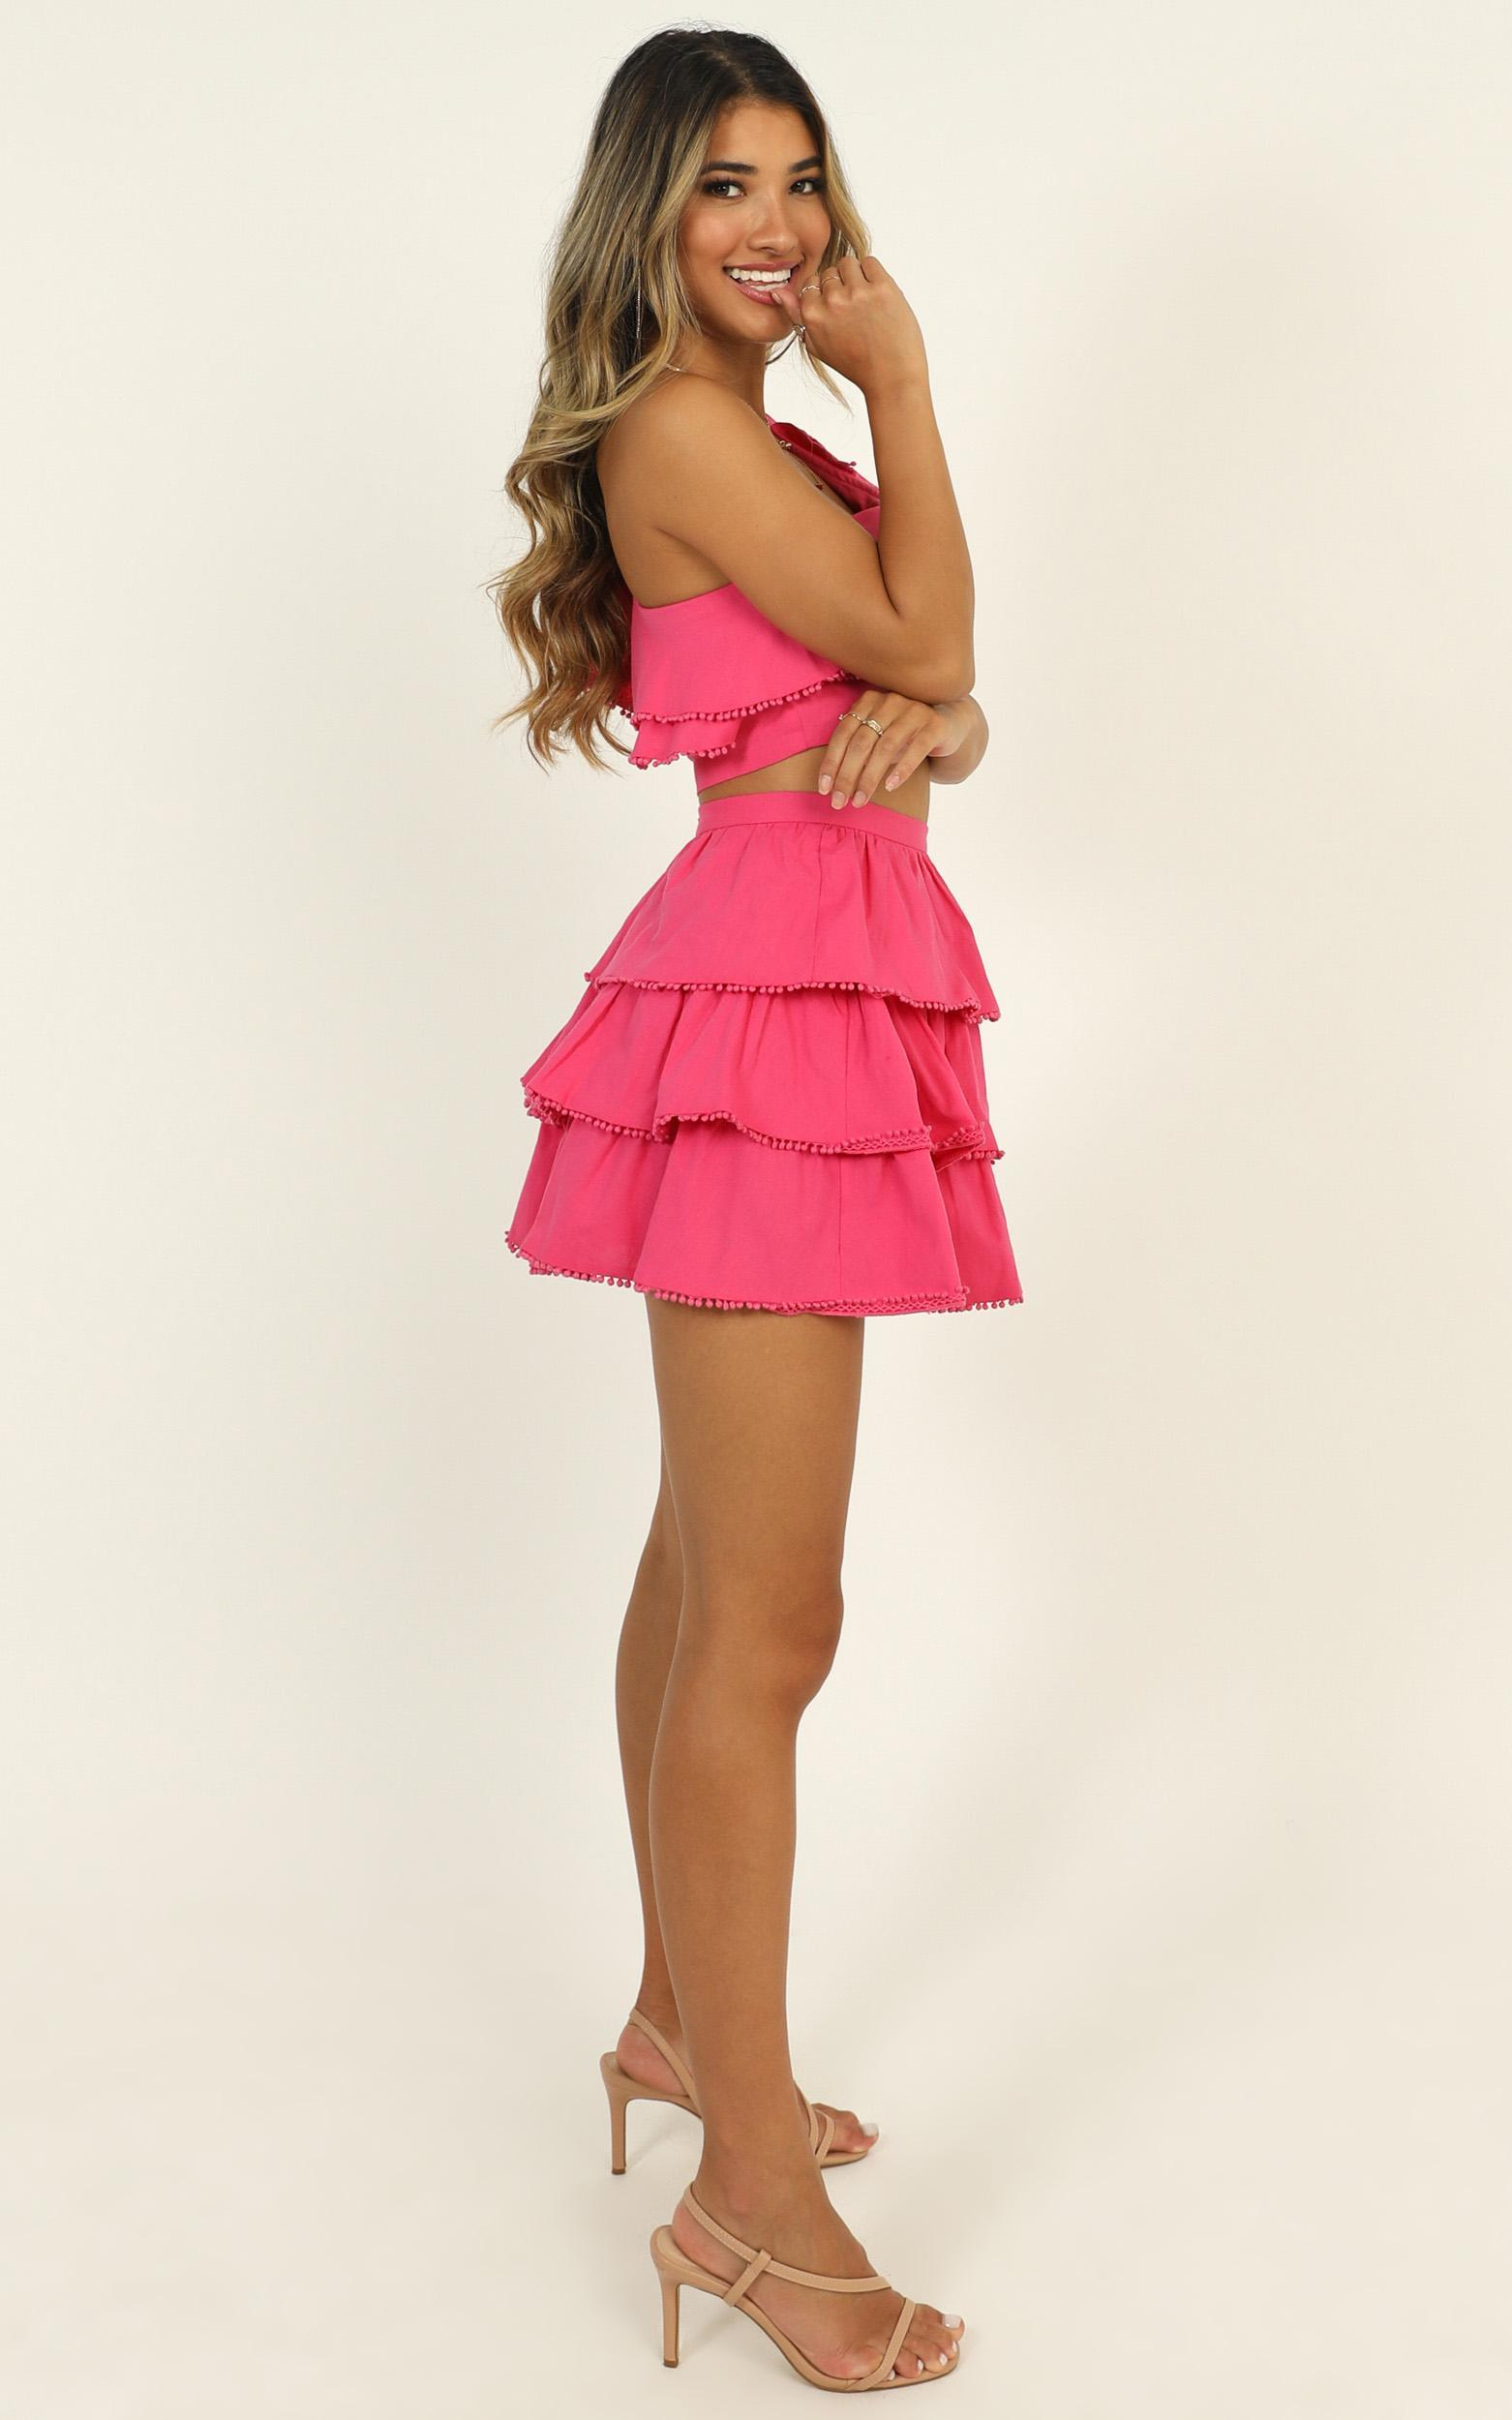 Rooftop Spritz Two Piece Set in hot pink - 20 (XXXXL), Pink, hi-res image number null